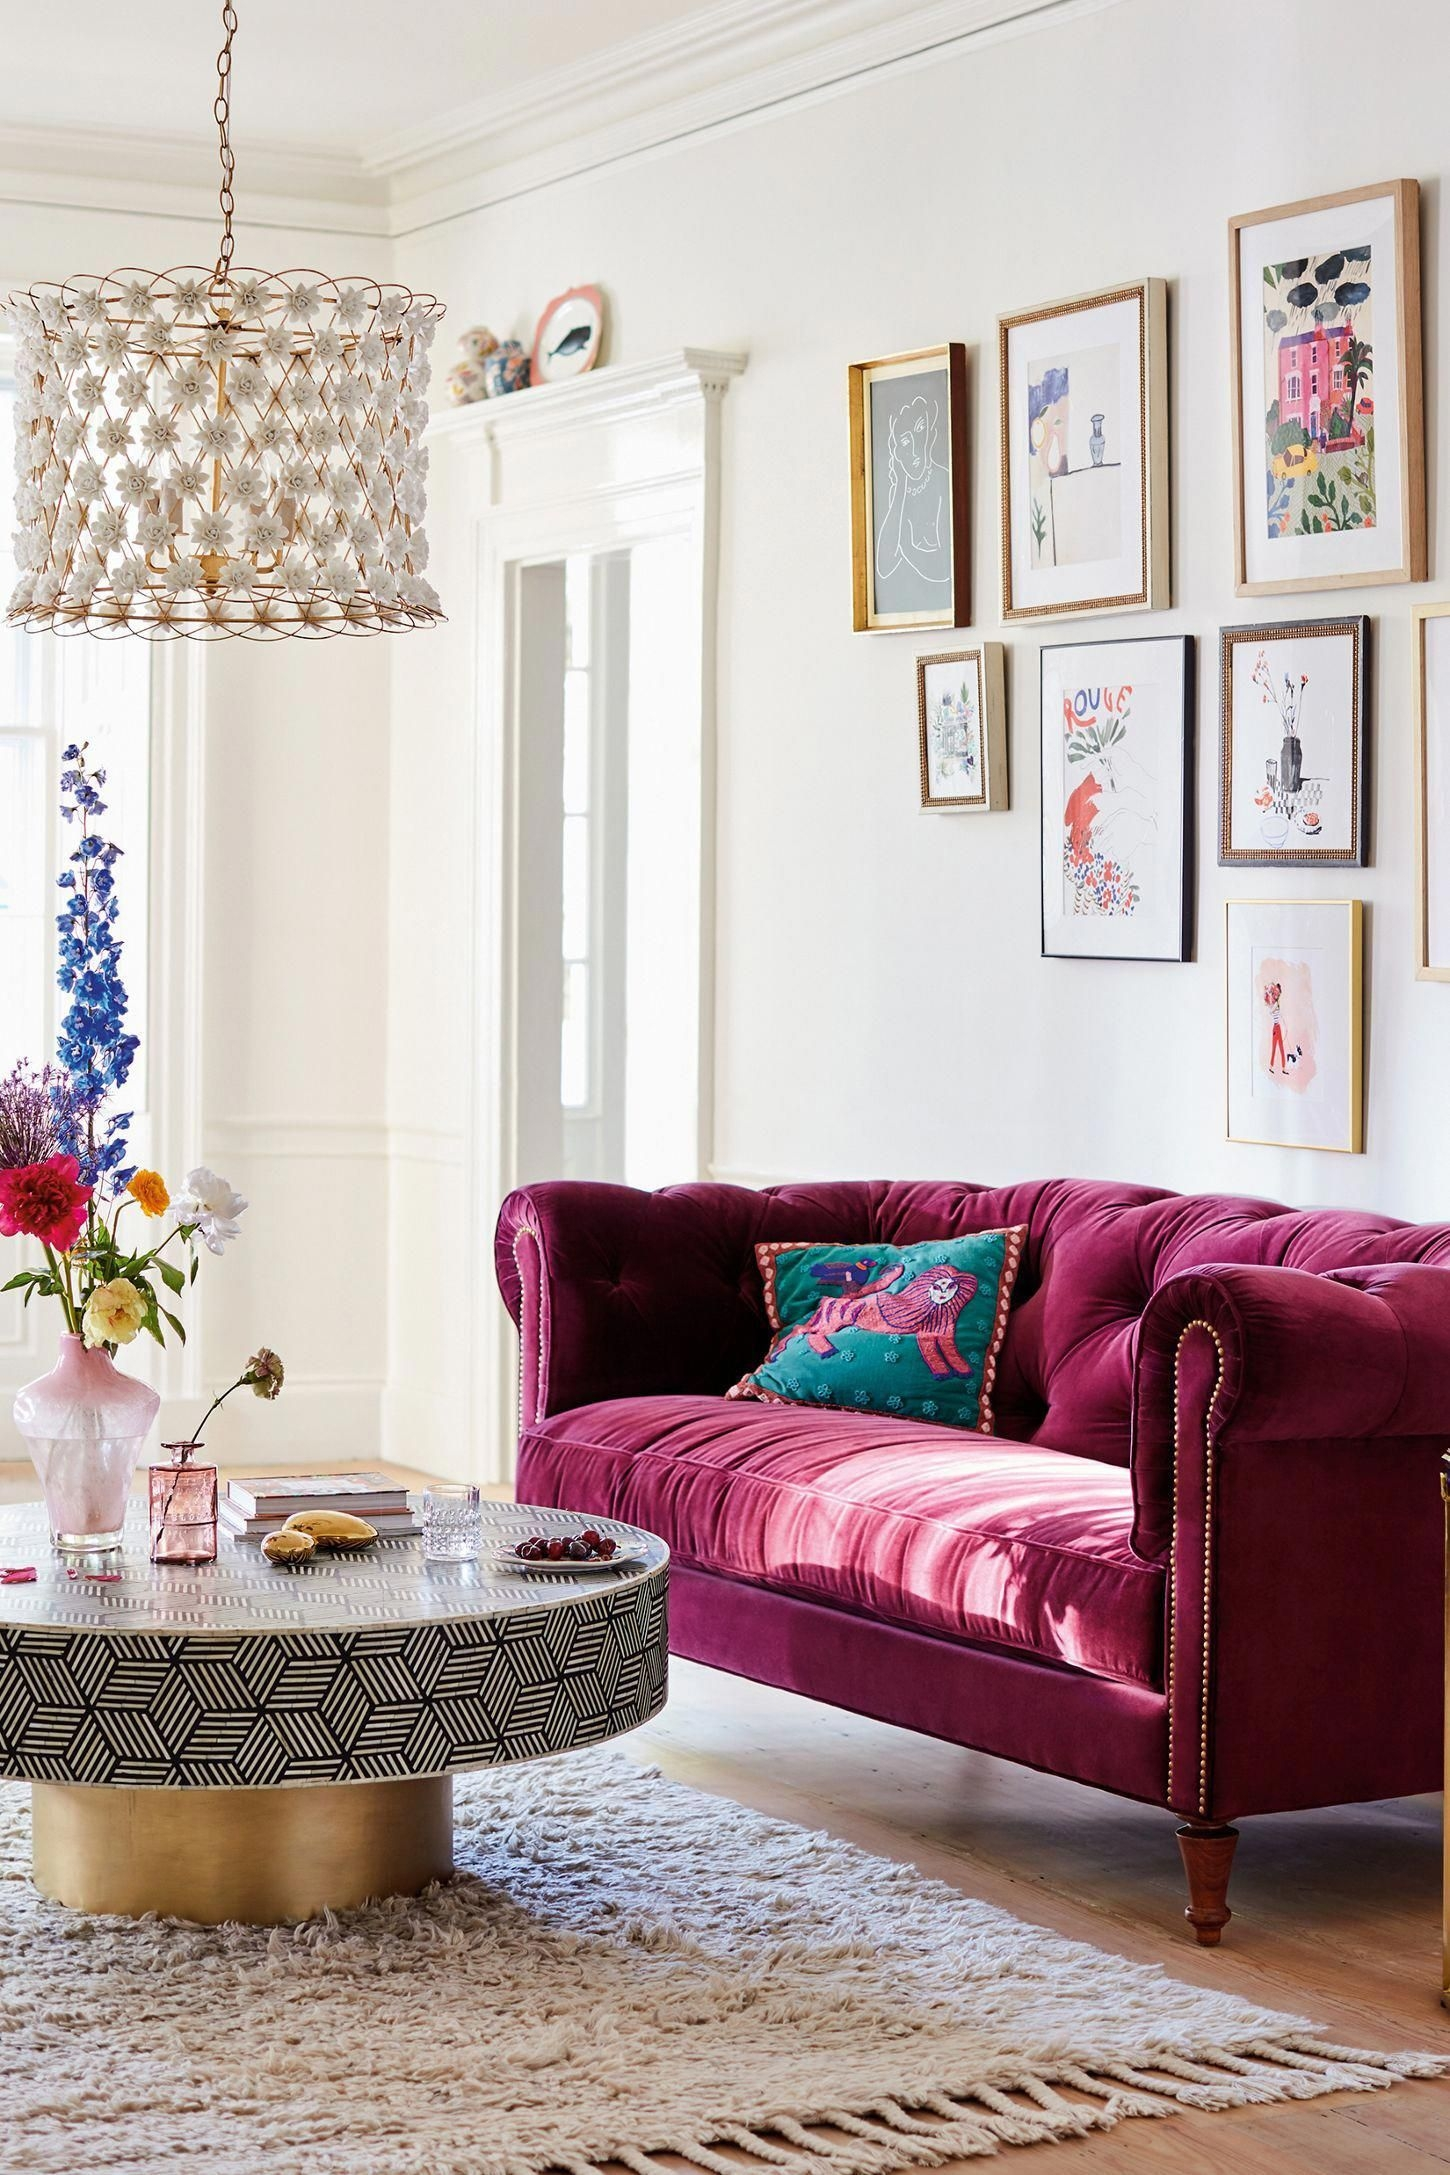 Irresistible Home Decor Ideas Living Room Modern Boho area Rug with Plum Accents On Delightful Pin On Living Room Home Decor On Home Decor Ideas Living Room Modern Boho area Rug with Plum Accents